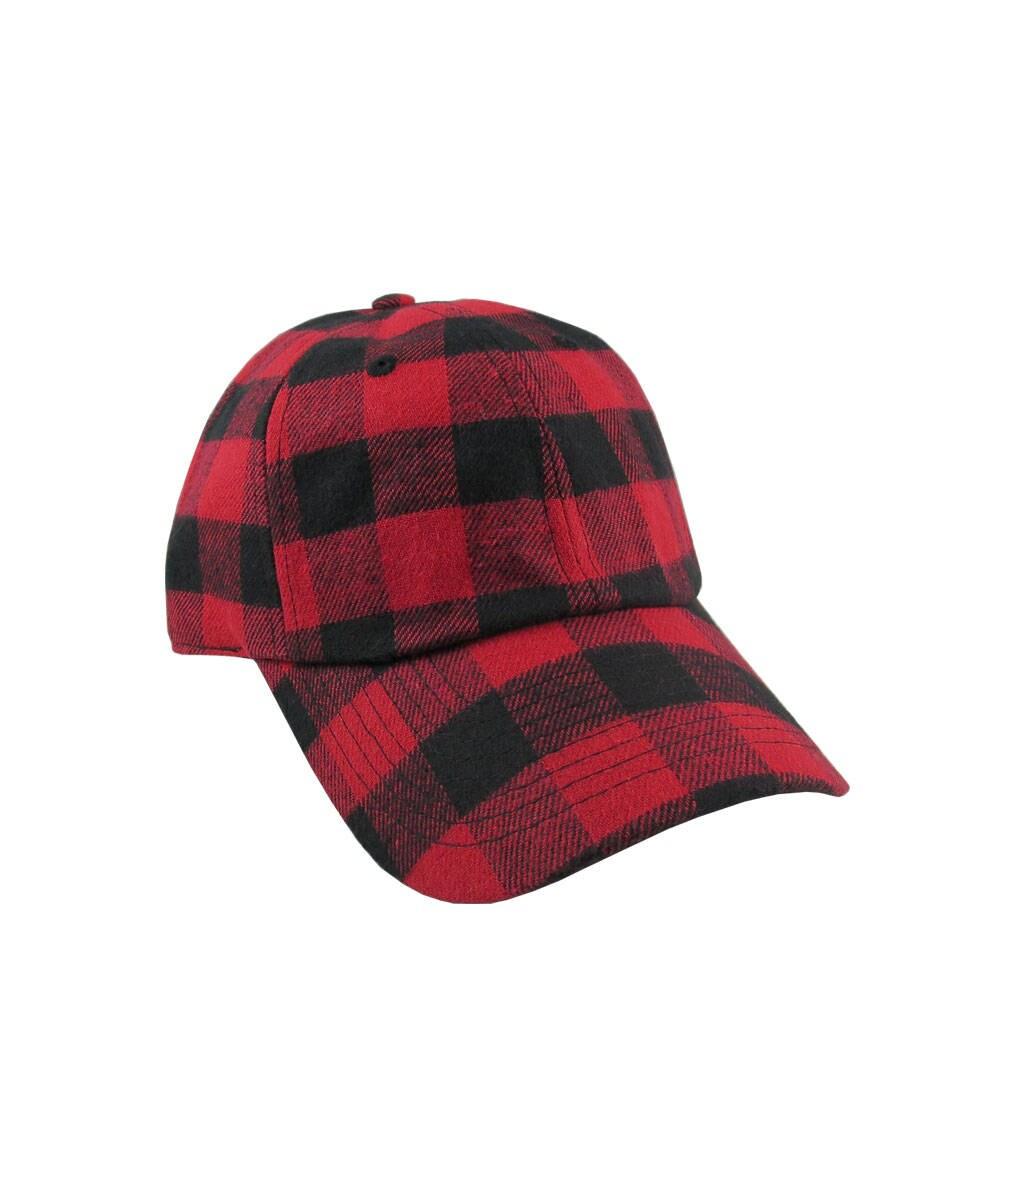 bd4fc2a5d5dde Personalized Red Buffalo Check Plaid Pattern Soft Structured Fashion  Baseball Cap Dad Hat Style Options to Personalize Front and or Back